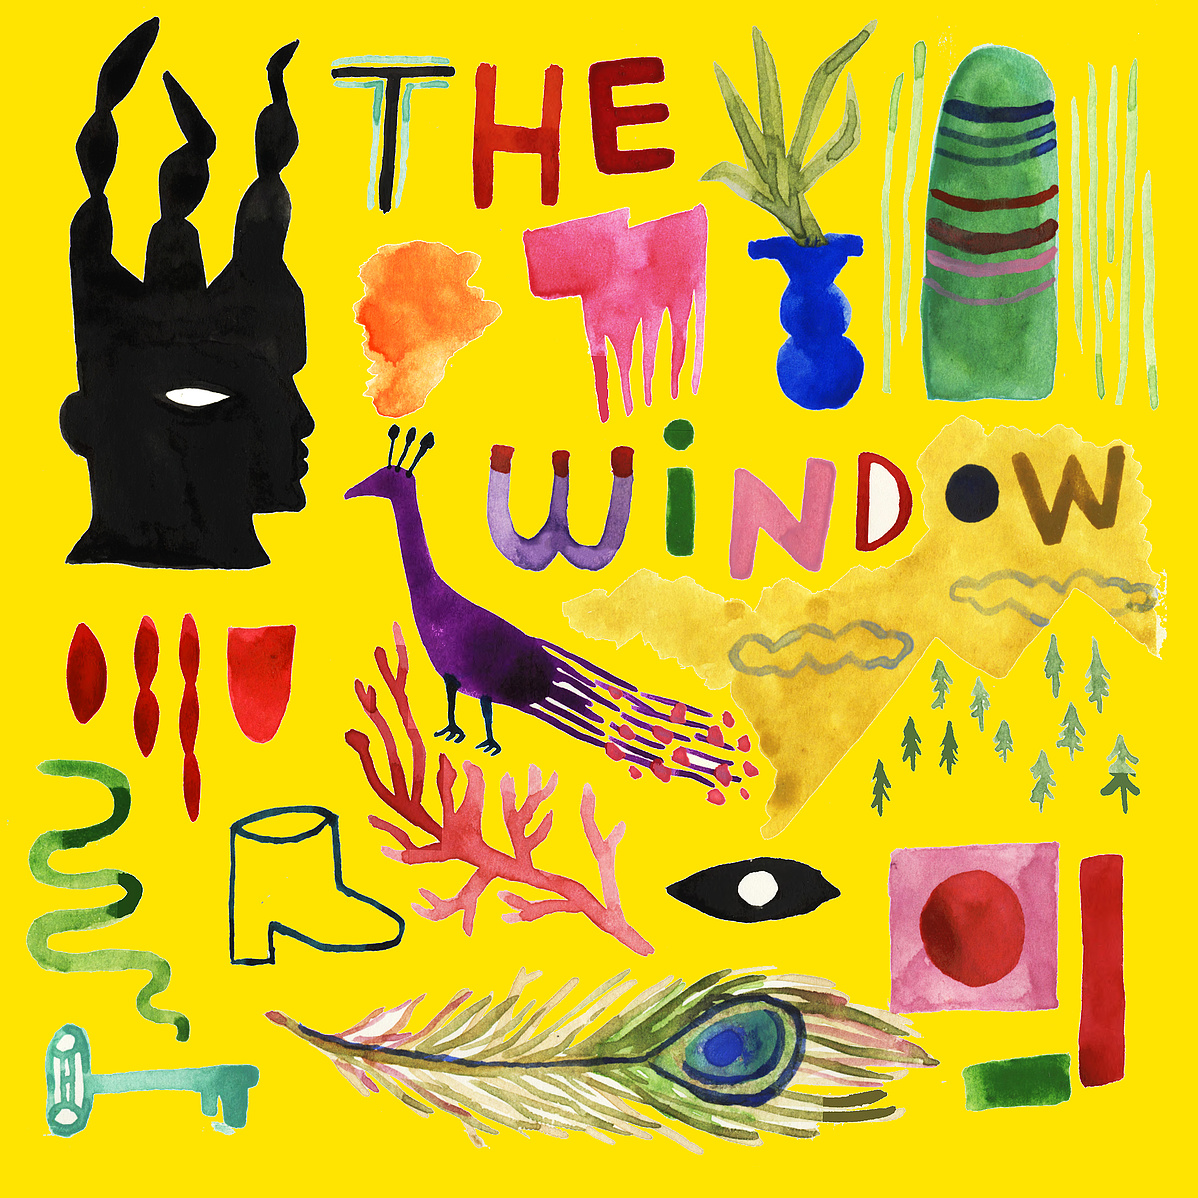 MAC-1132-Cecile-McLorin-Salvant_The-Window-cover-3000x3000-rgb-115527.jpg